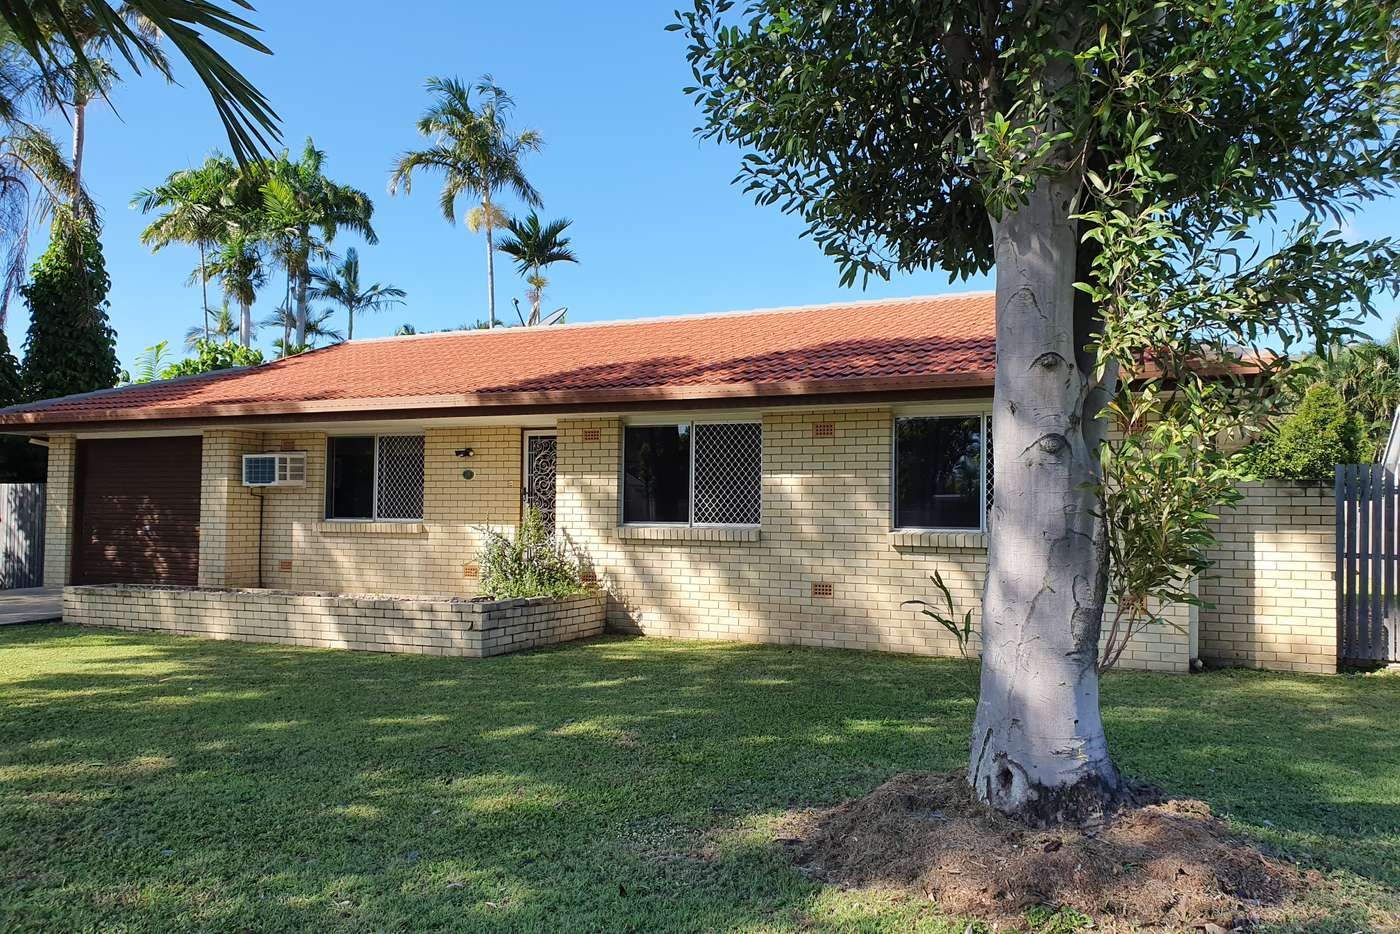 Main view of Homely house listing, 27 Jacaranda Crescent, Annandale QLD 4814